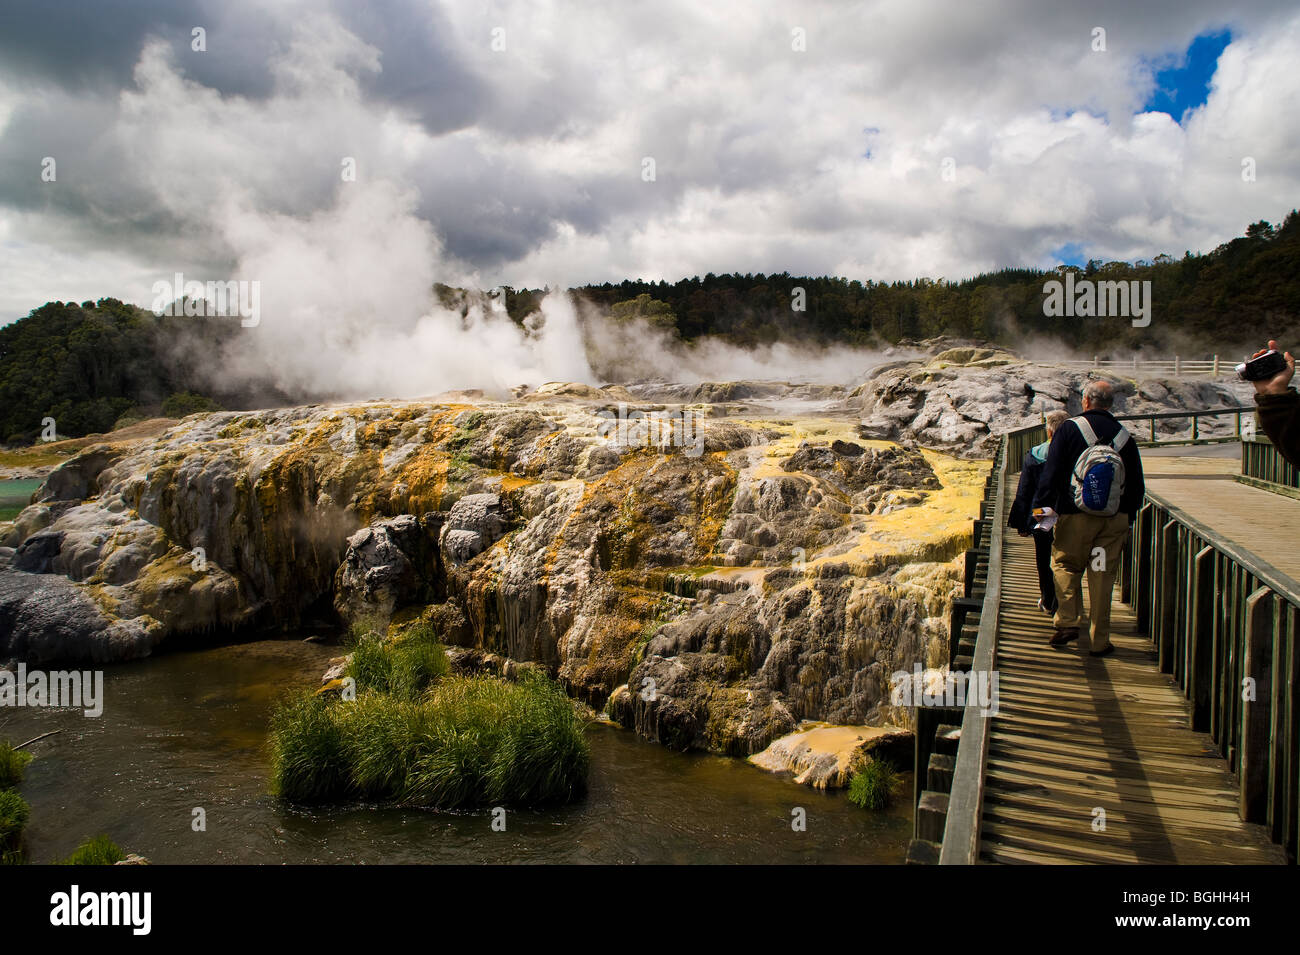 Whakarewarewa Thermal Reserve, North Island, New Zealand - Stock Image